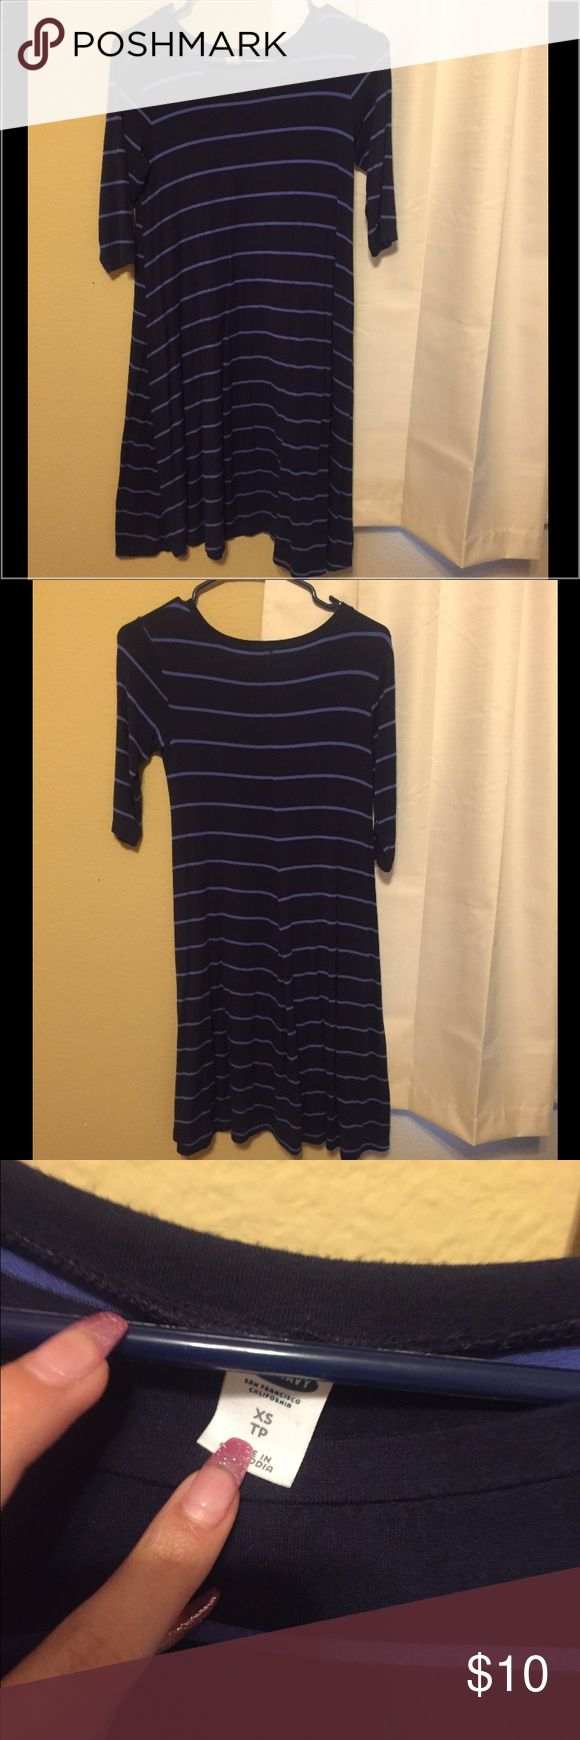 """Old Navy Striped dress Old navy striped navy/blue swing dress great condition 4'10"""" for reference Old Navy Dresses"""